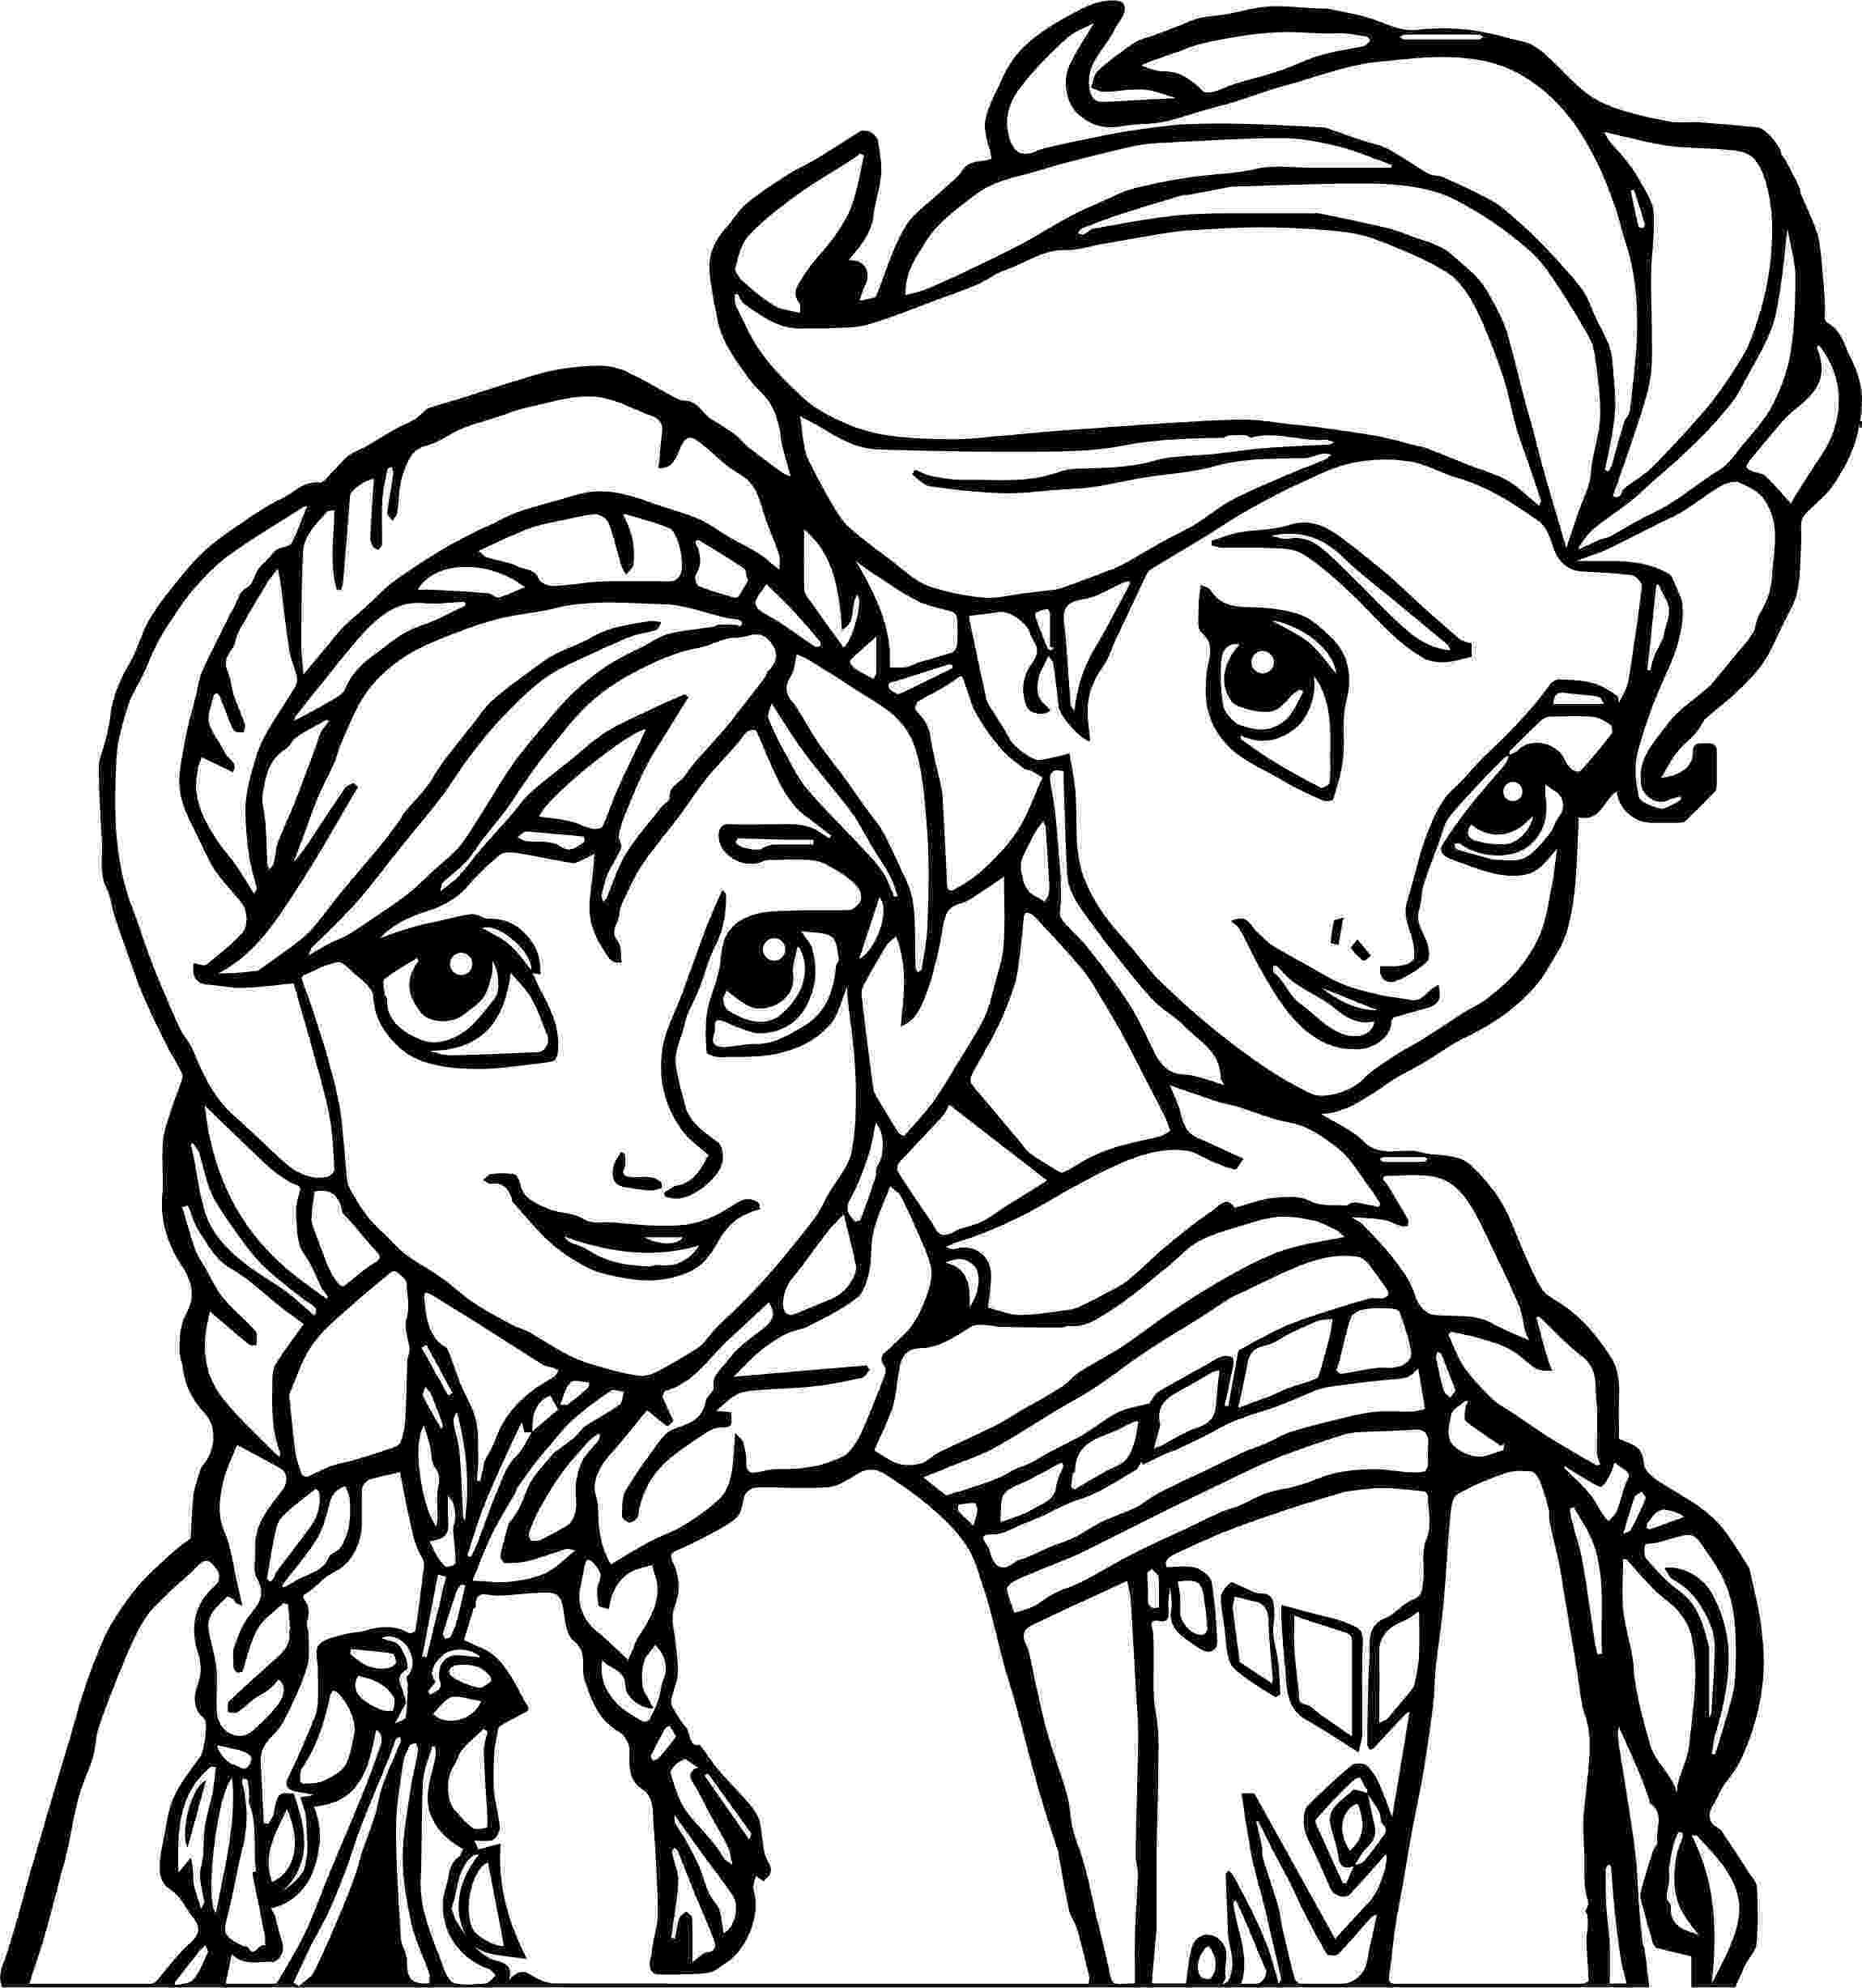 free coloring pages elsa and anna elsa anna coloring page wecoloringpagecom pages elsa and coloring anna free